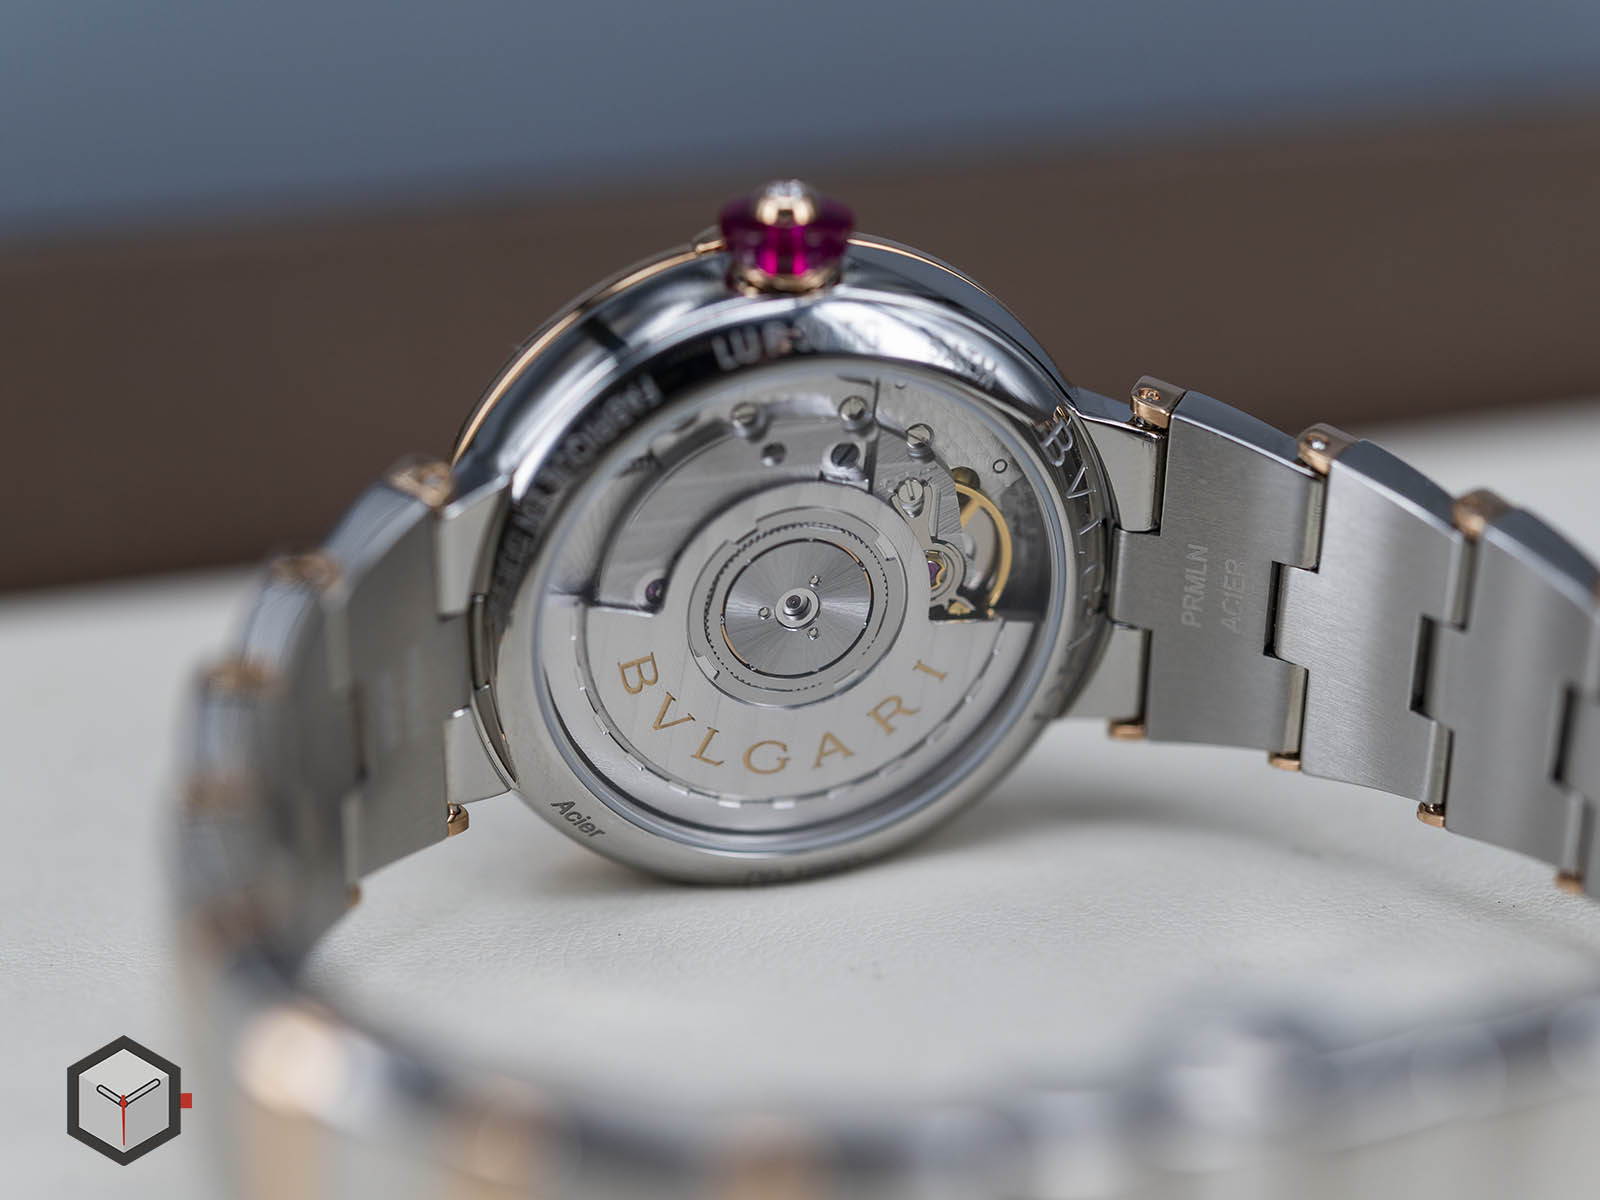 102980-bulgari-lvcea-automatic-stainless-steel-gold-9.jpg